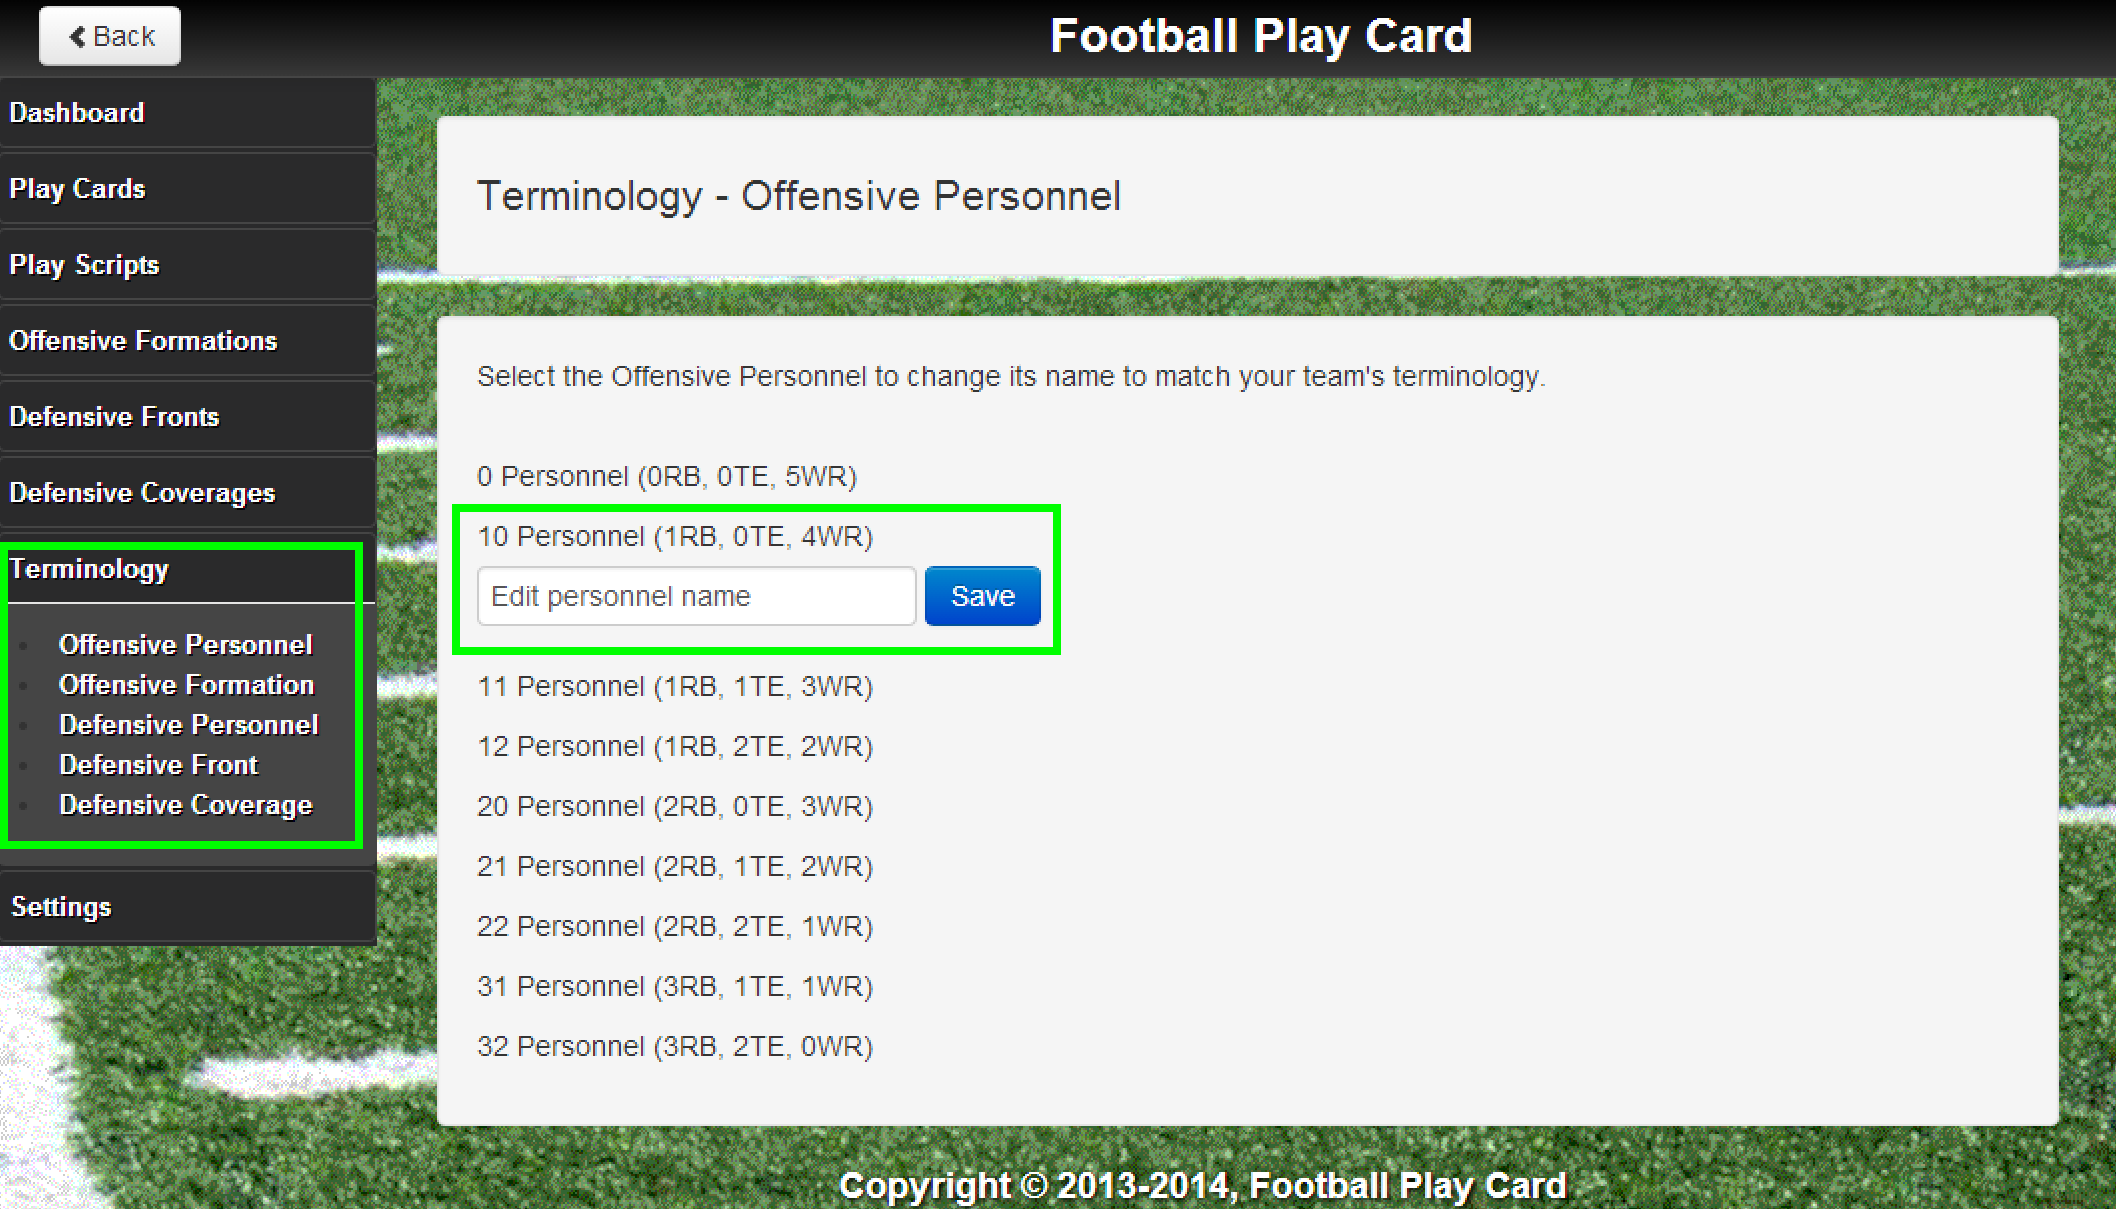 Change the terminology of offensive personnels, formations, defensive personnels, fronts, and coverages